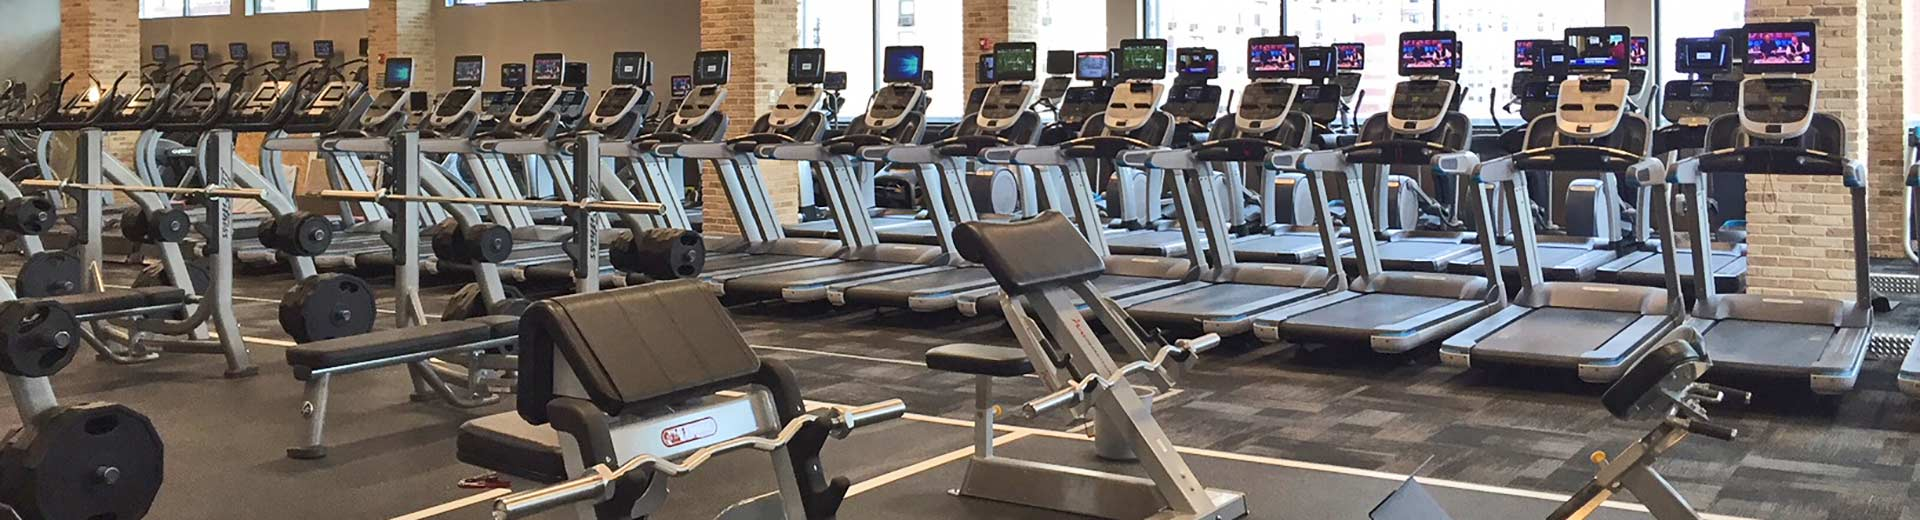 chicago east lakeview gym amenities | xsport fitness